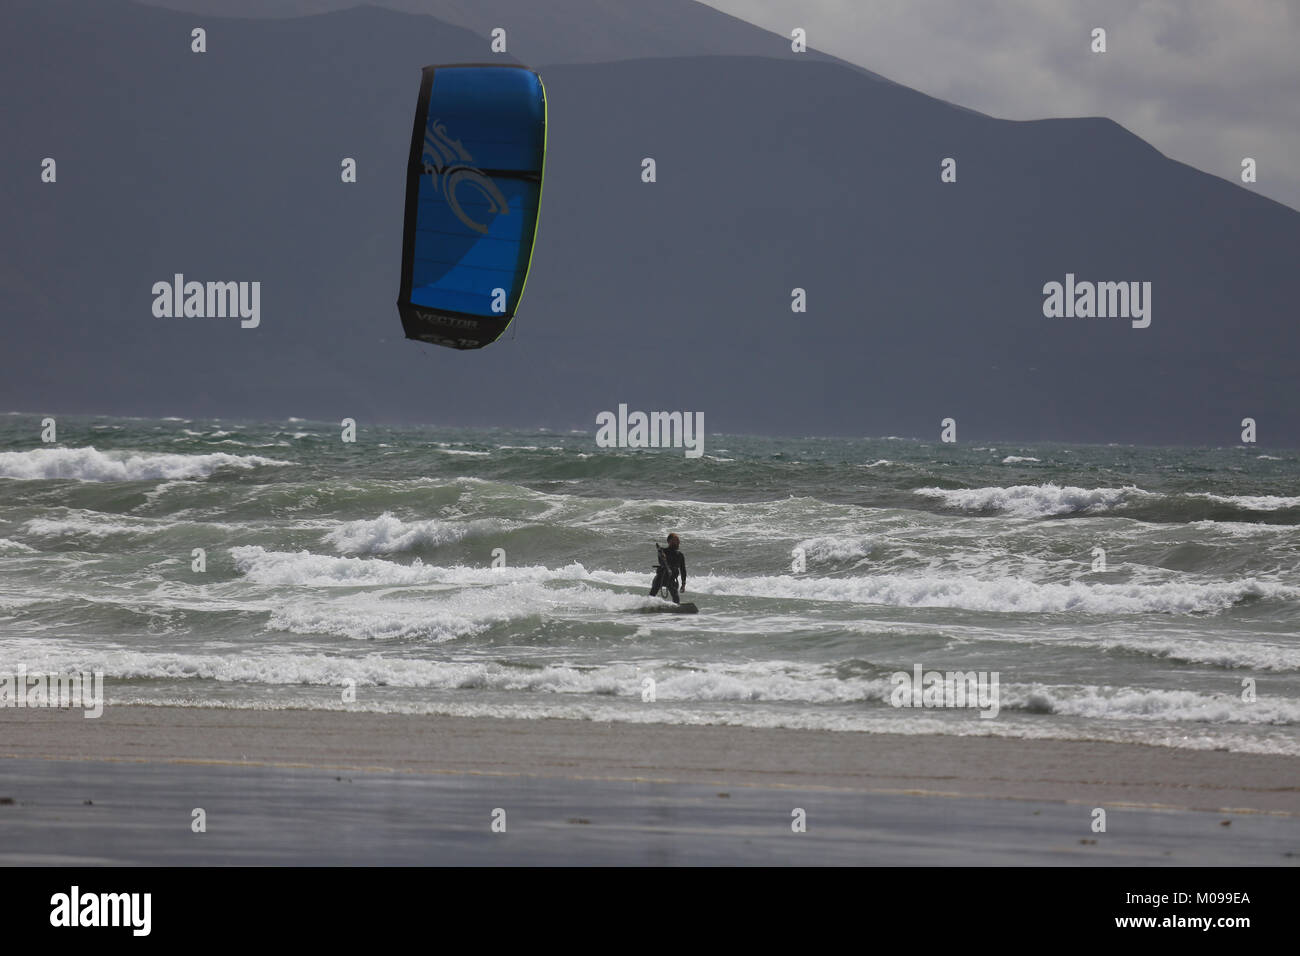 Surfing and playing with a kite on a beach on The Wild Atlantic Way - Stock Image